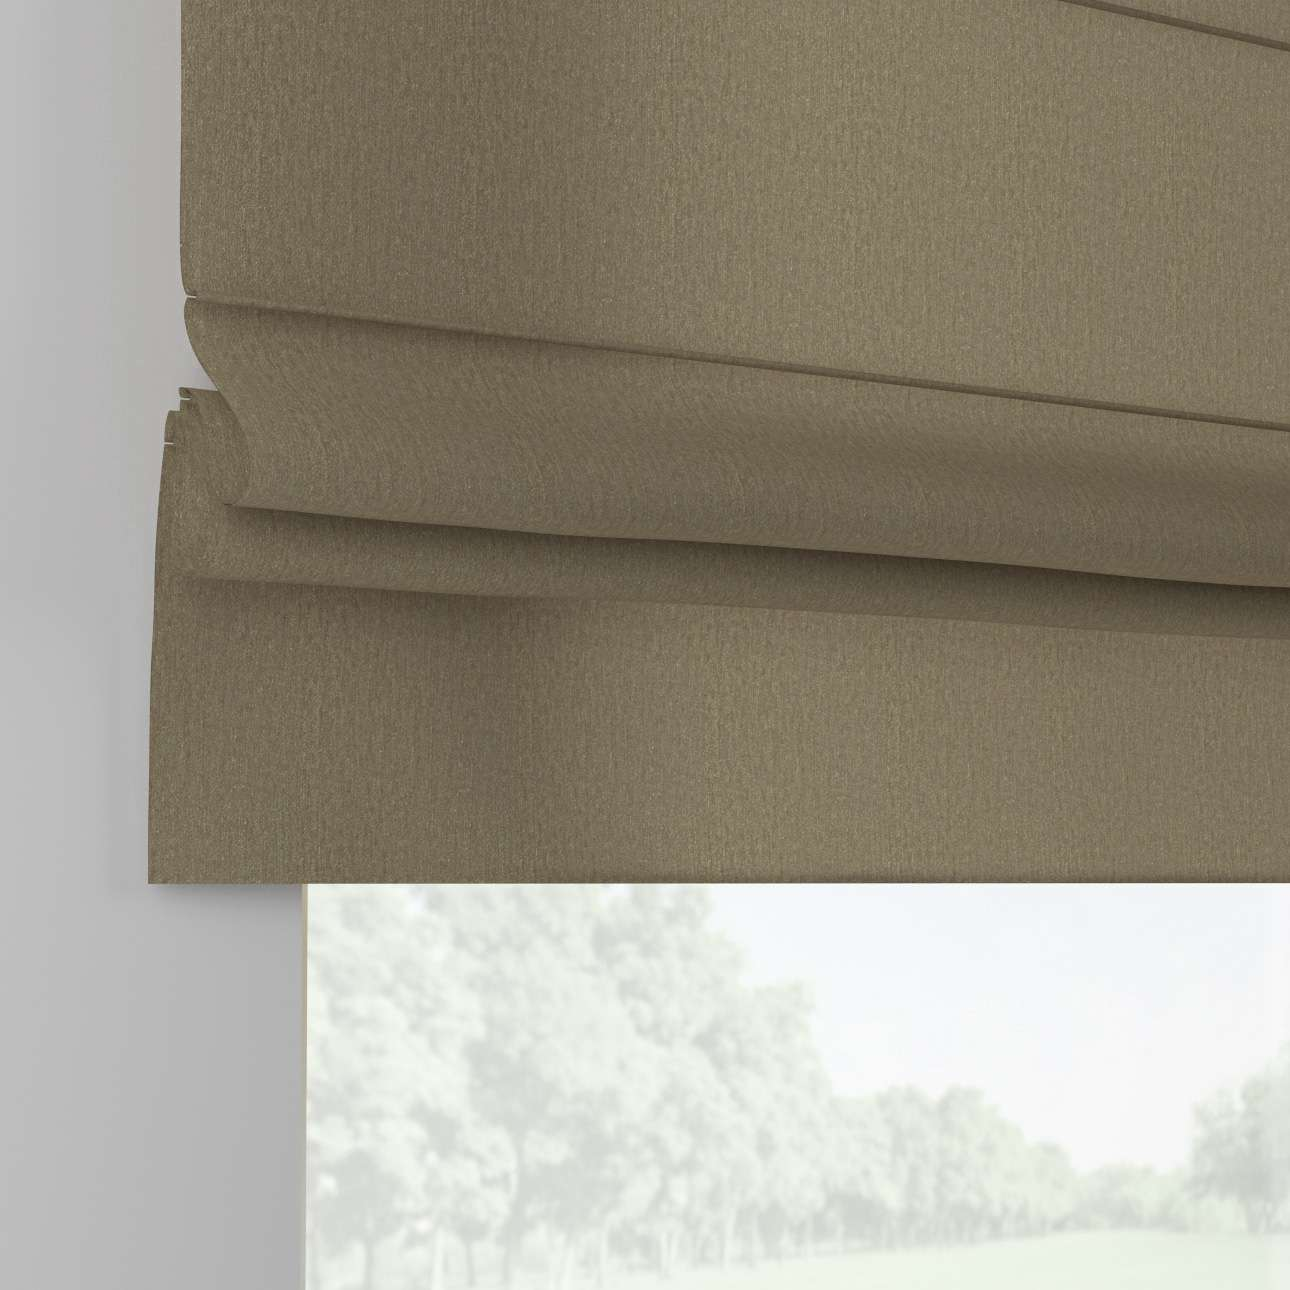 Padva roman blind  80 x 170 cm (31.5 x 67 inch) in collection Chenille, fabric: 702-21